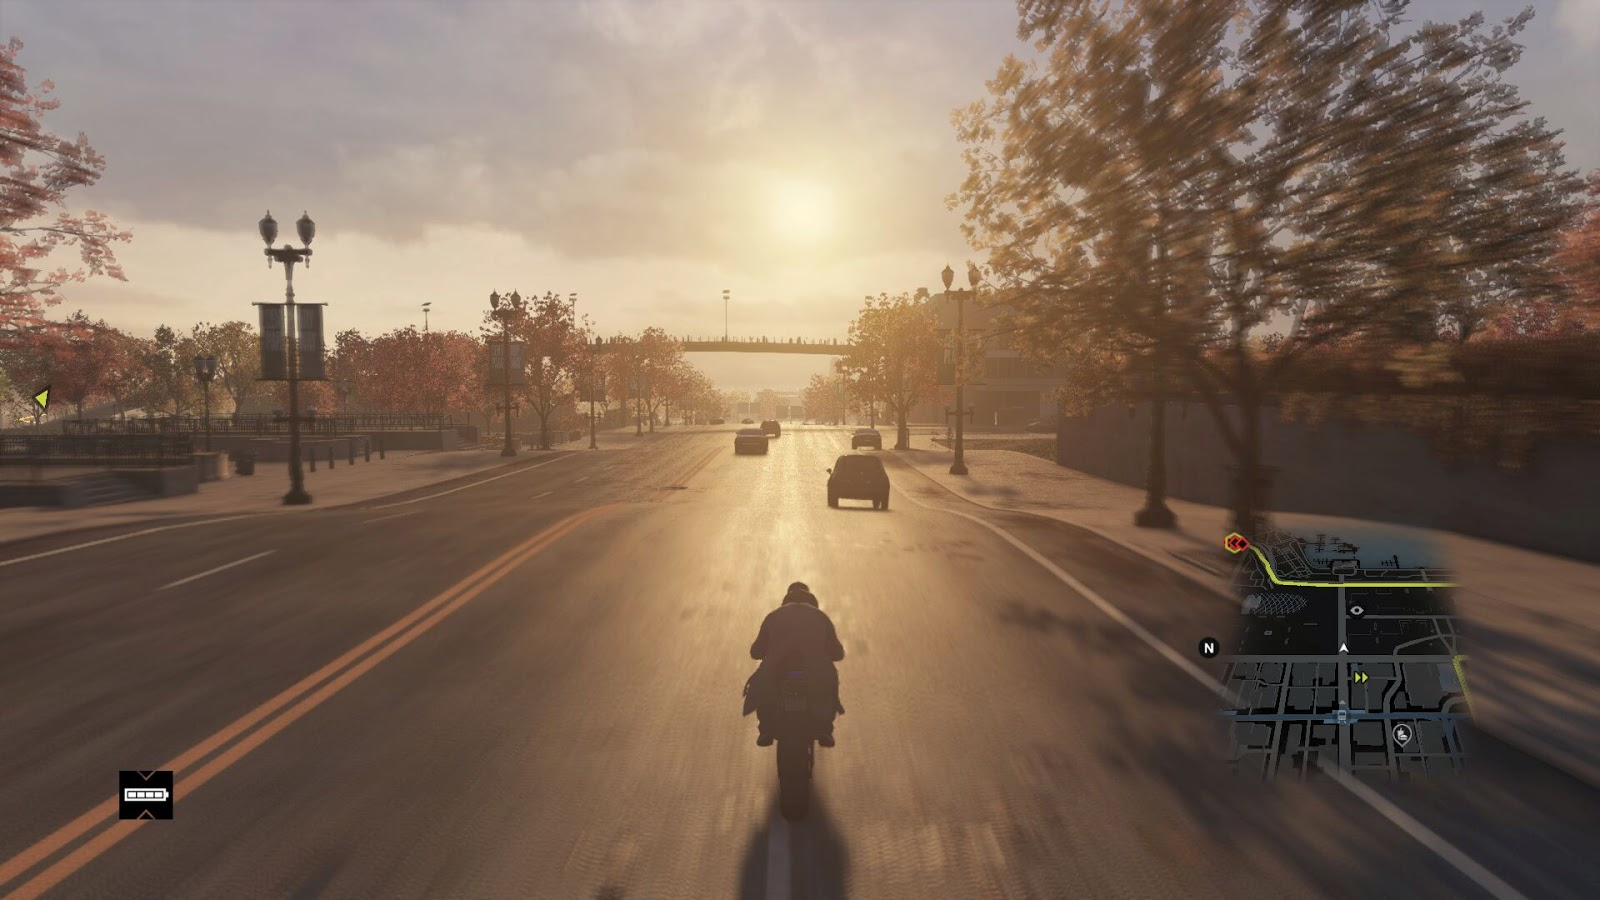 Sake Gaming: Watchdogs screenshots and a graphics comparison